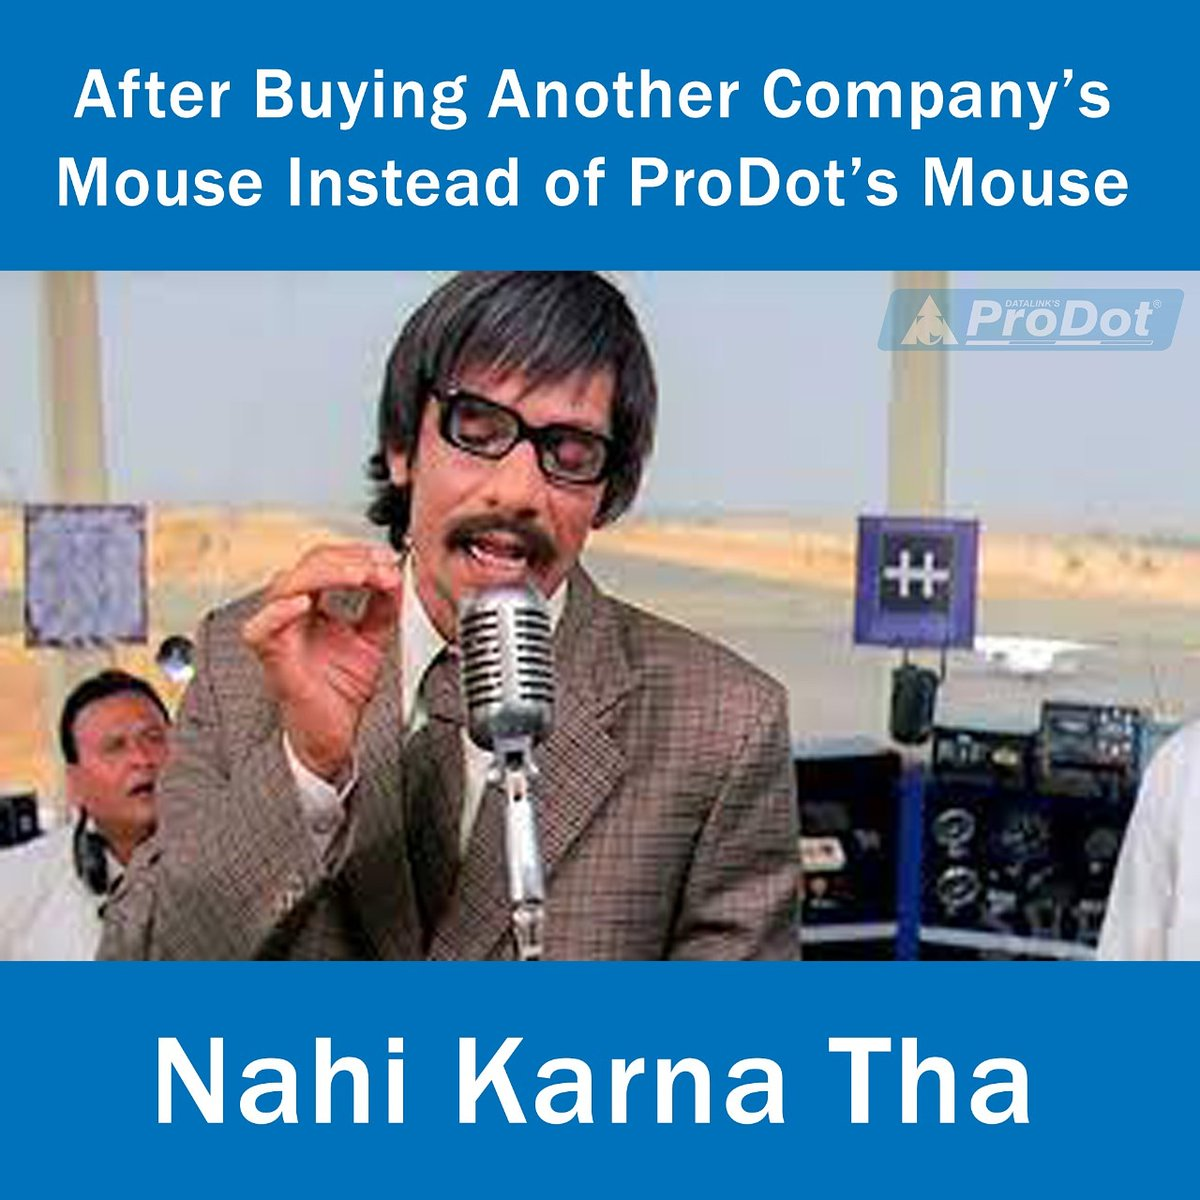 """Even your computer will say """"nahi karna tha"""" if you plug in any other mouse then prodot! Our advance technology will give you efficiency that you will never forget!  #PRODOT #bhyp #dhamalmovie #moviememes #bollywoodmemes #MadeInIndia #tflers #likeforlikes #ITproducts"""